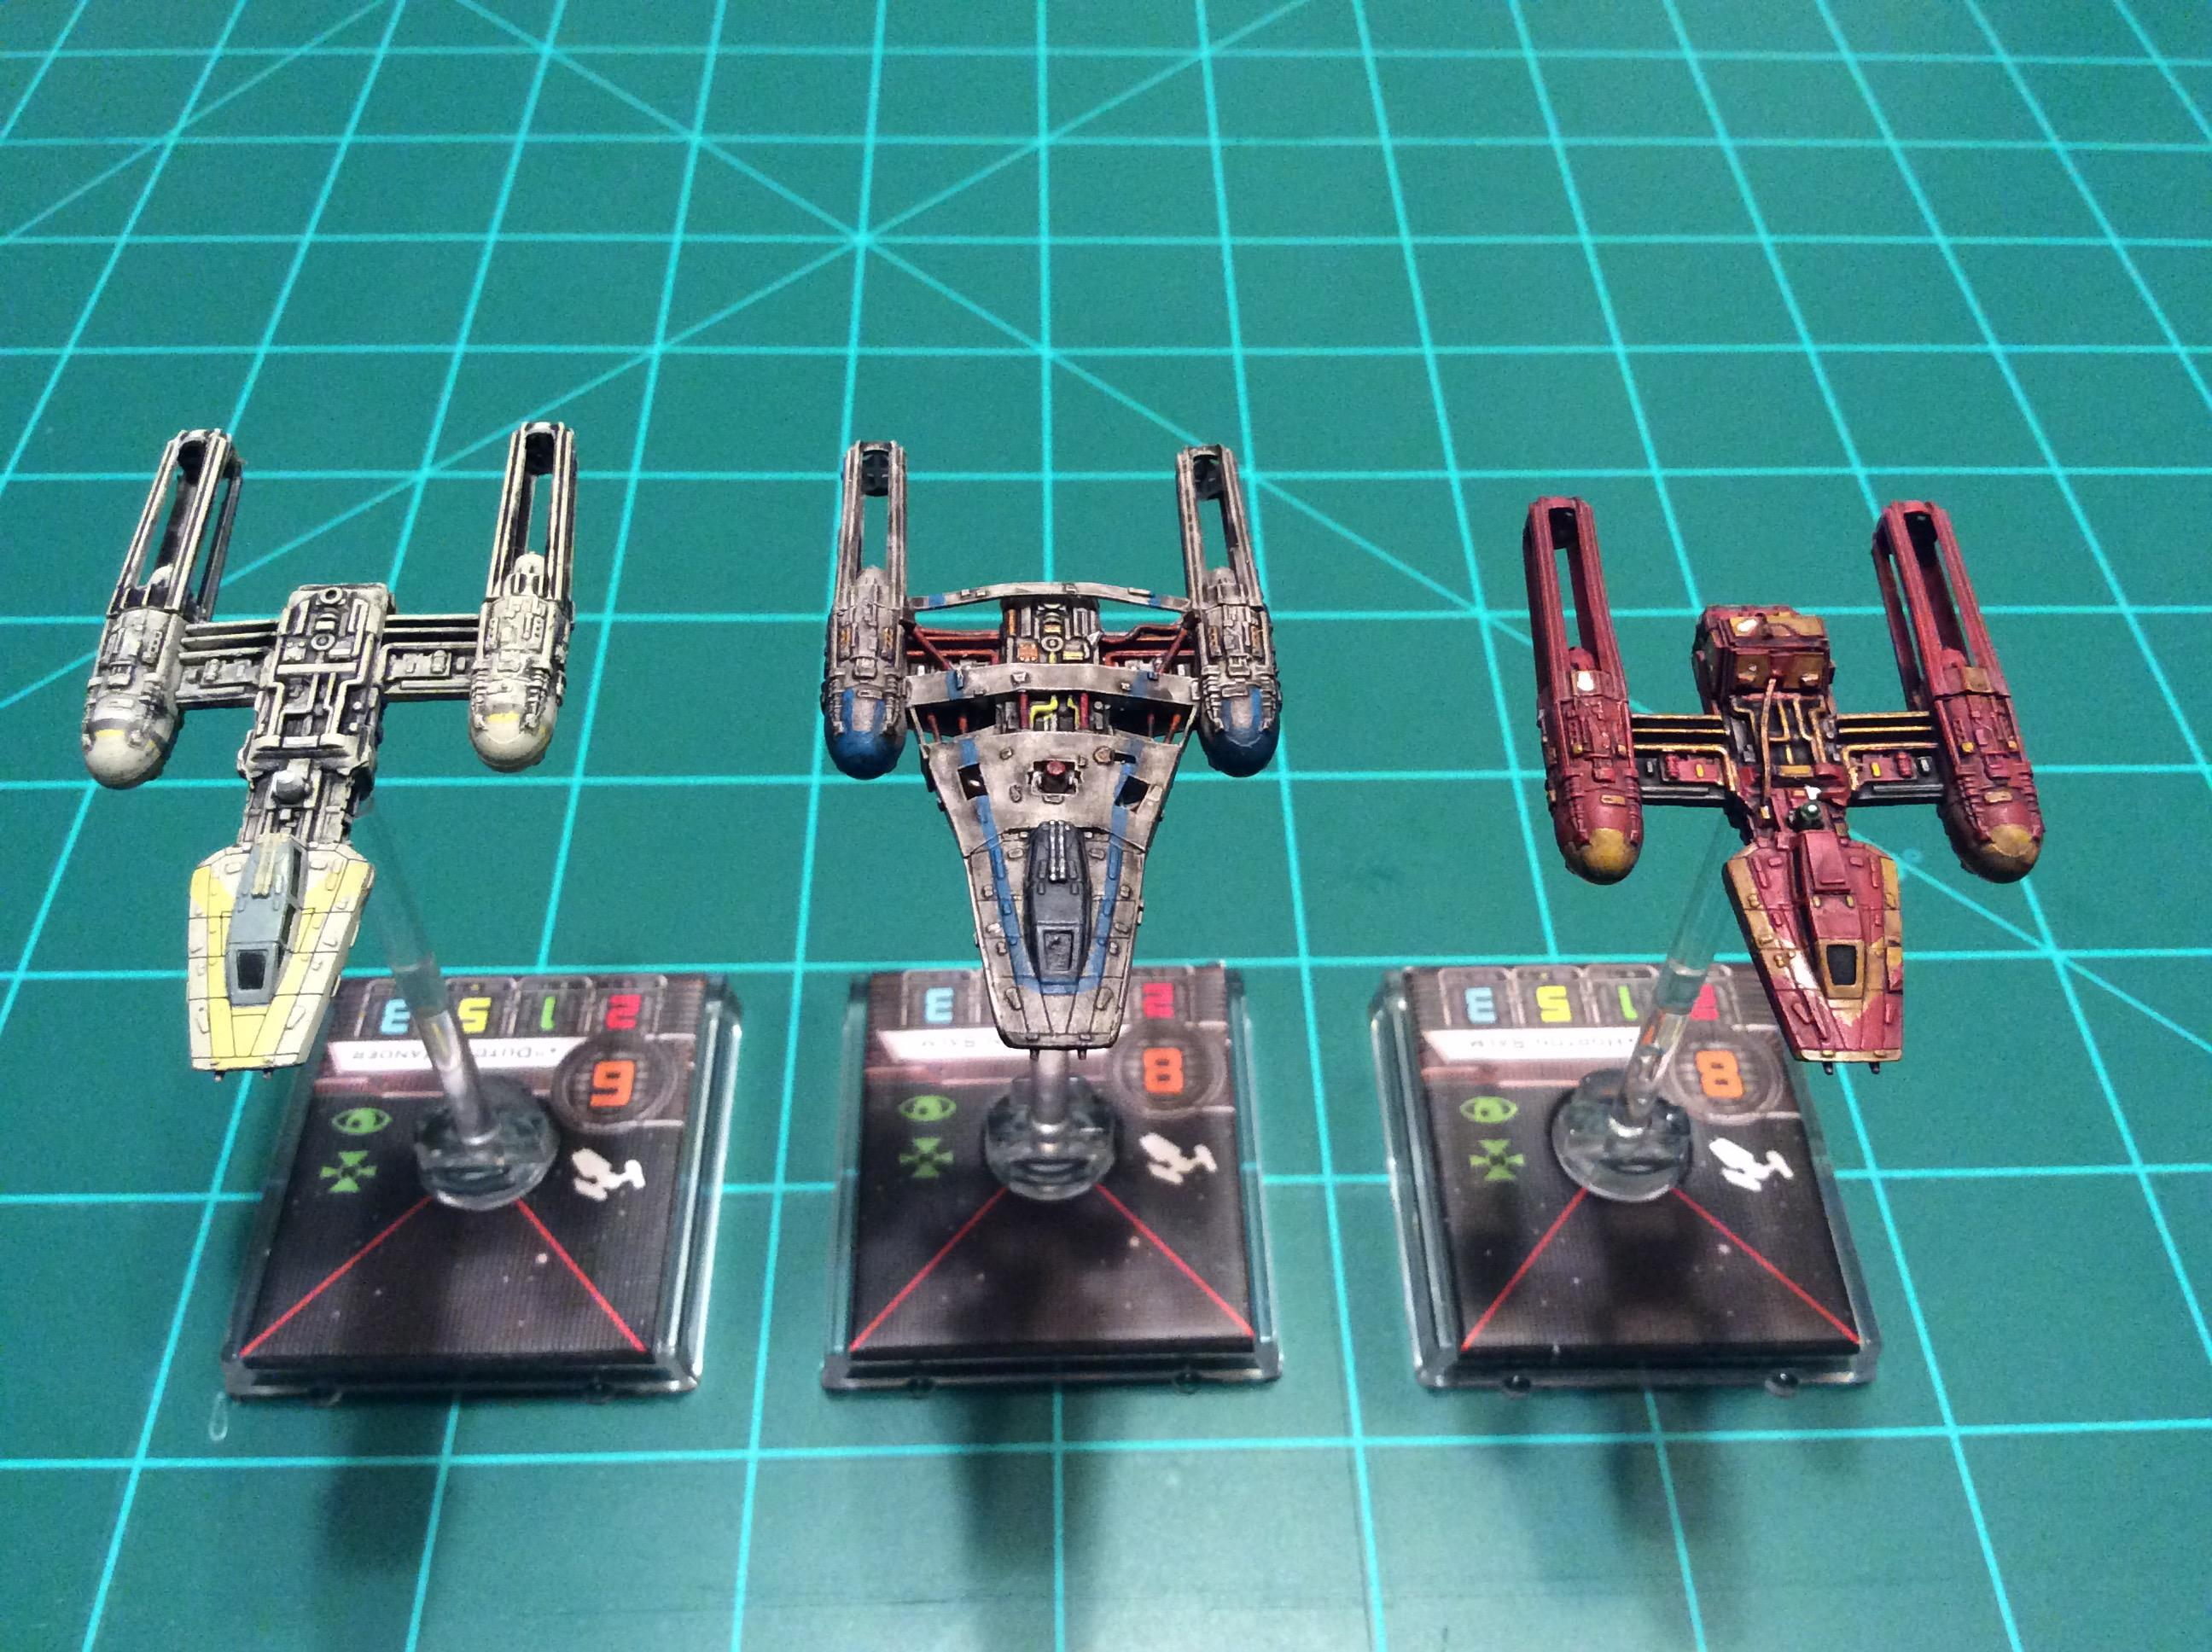 1/270 Scale, Star Wars, X-wing Miniatures Game, Y-wing